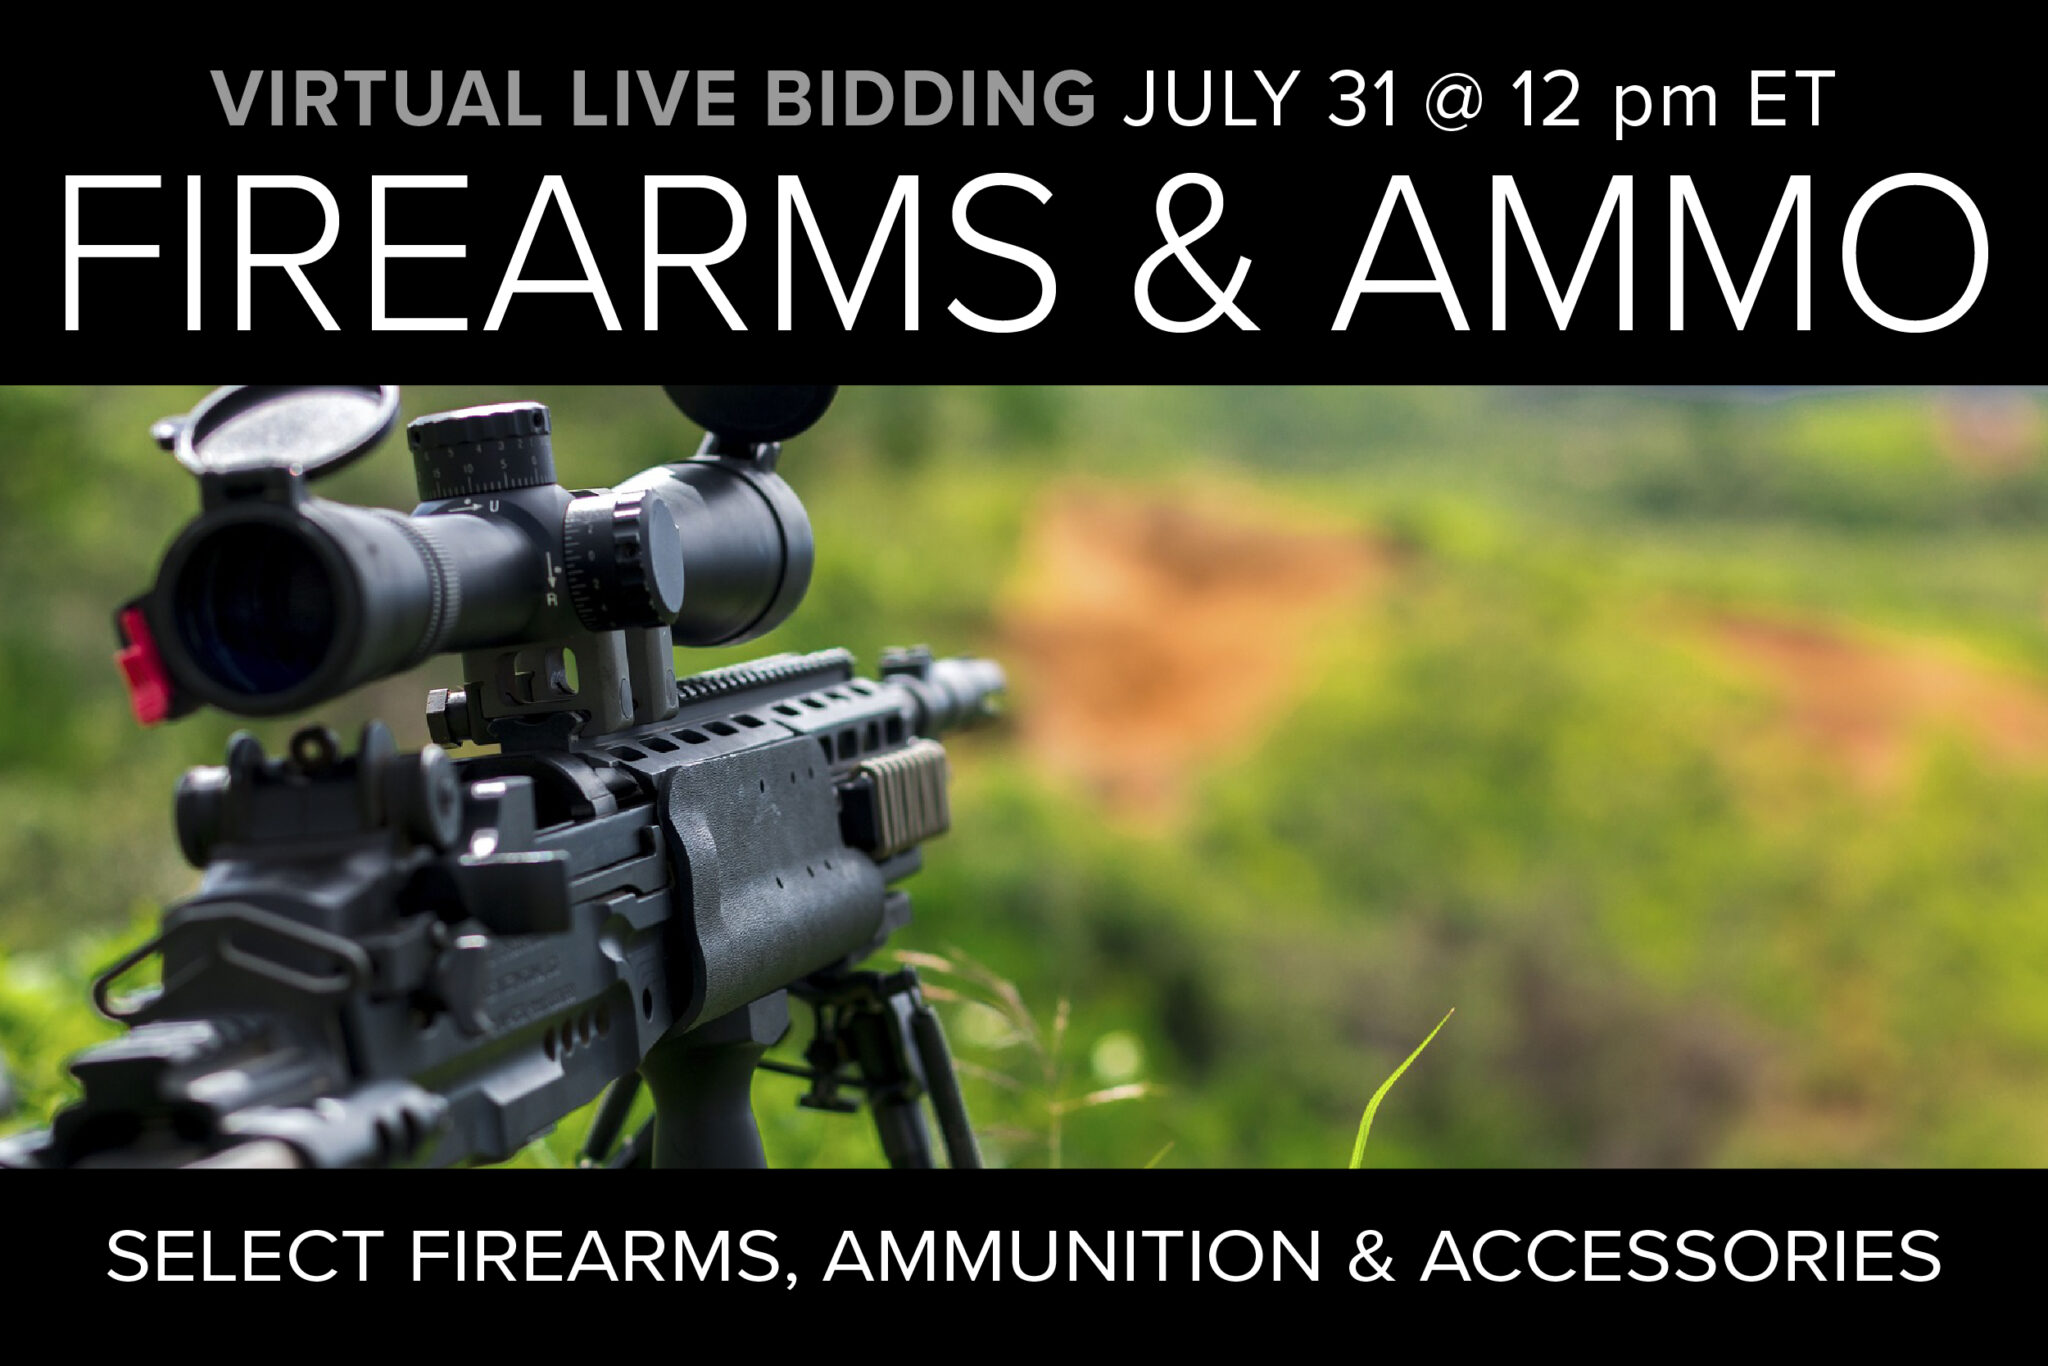 Firearms and Ammo Virtual Lie Auction on July 31 at 12pm ET